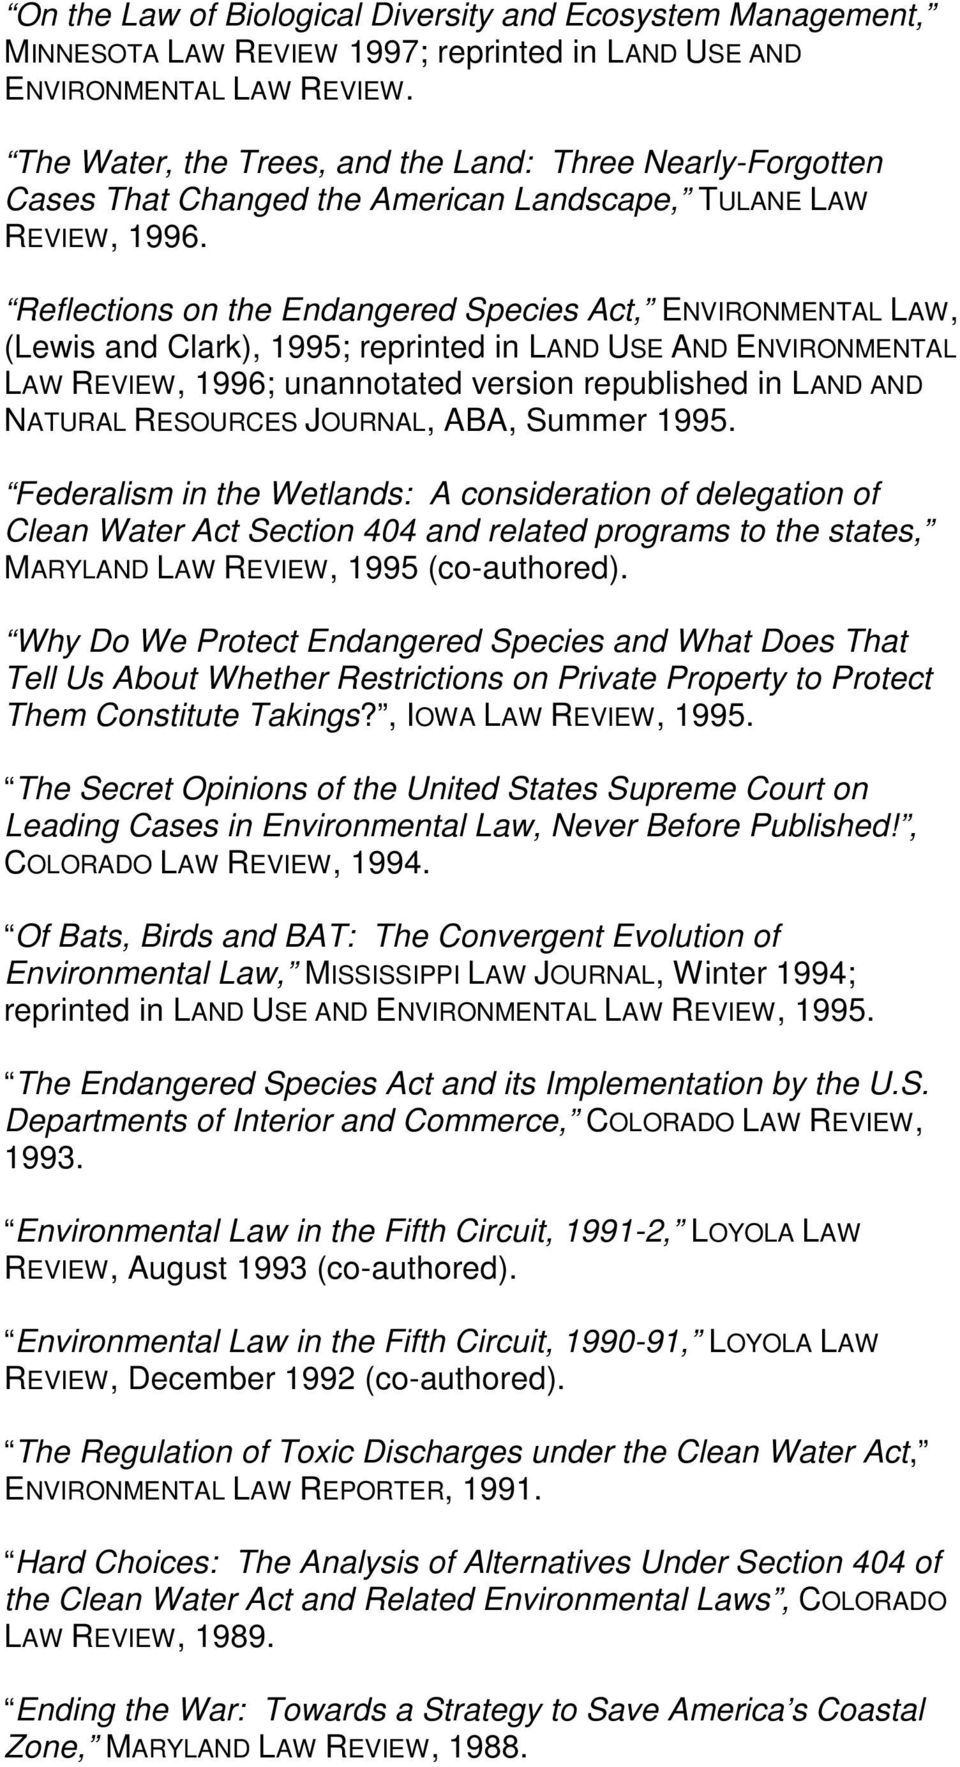 Reflections on the Endangered Species Act, ENVIRONMENTAL LAW, (Lewis and Clark), 1995; reprinted in LAND USE AND ENVIRONMENTAL LAW REVIEW, 1996; unannotated version republished in LAND AND NATURAL